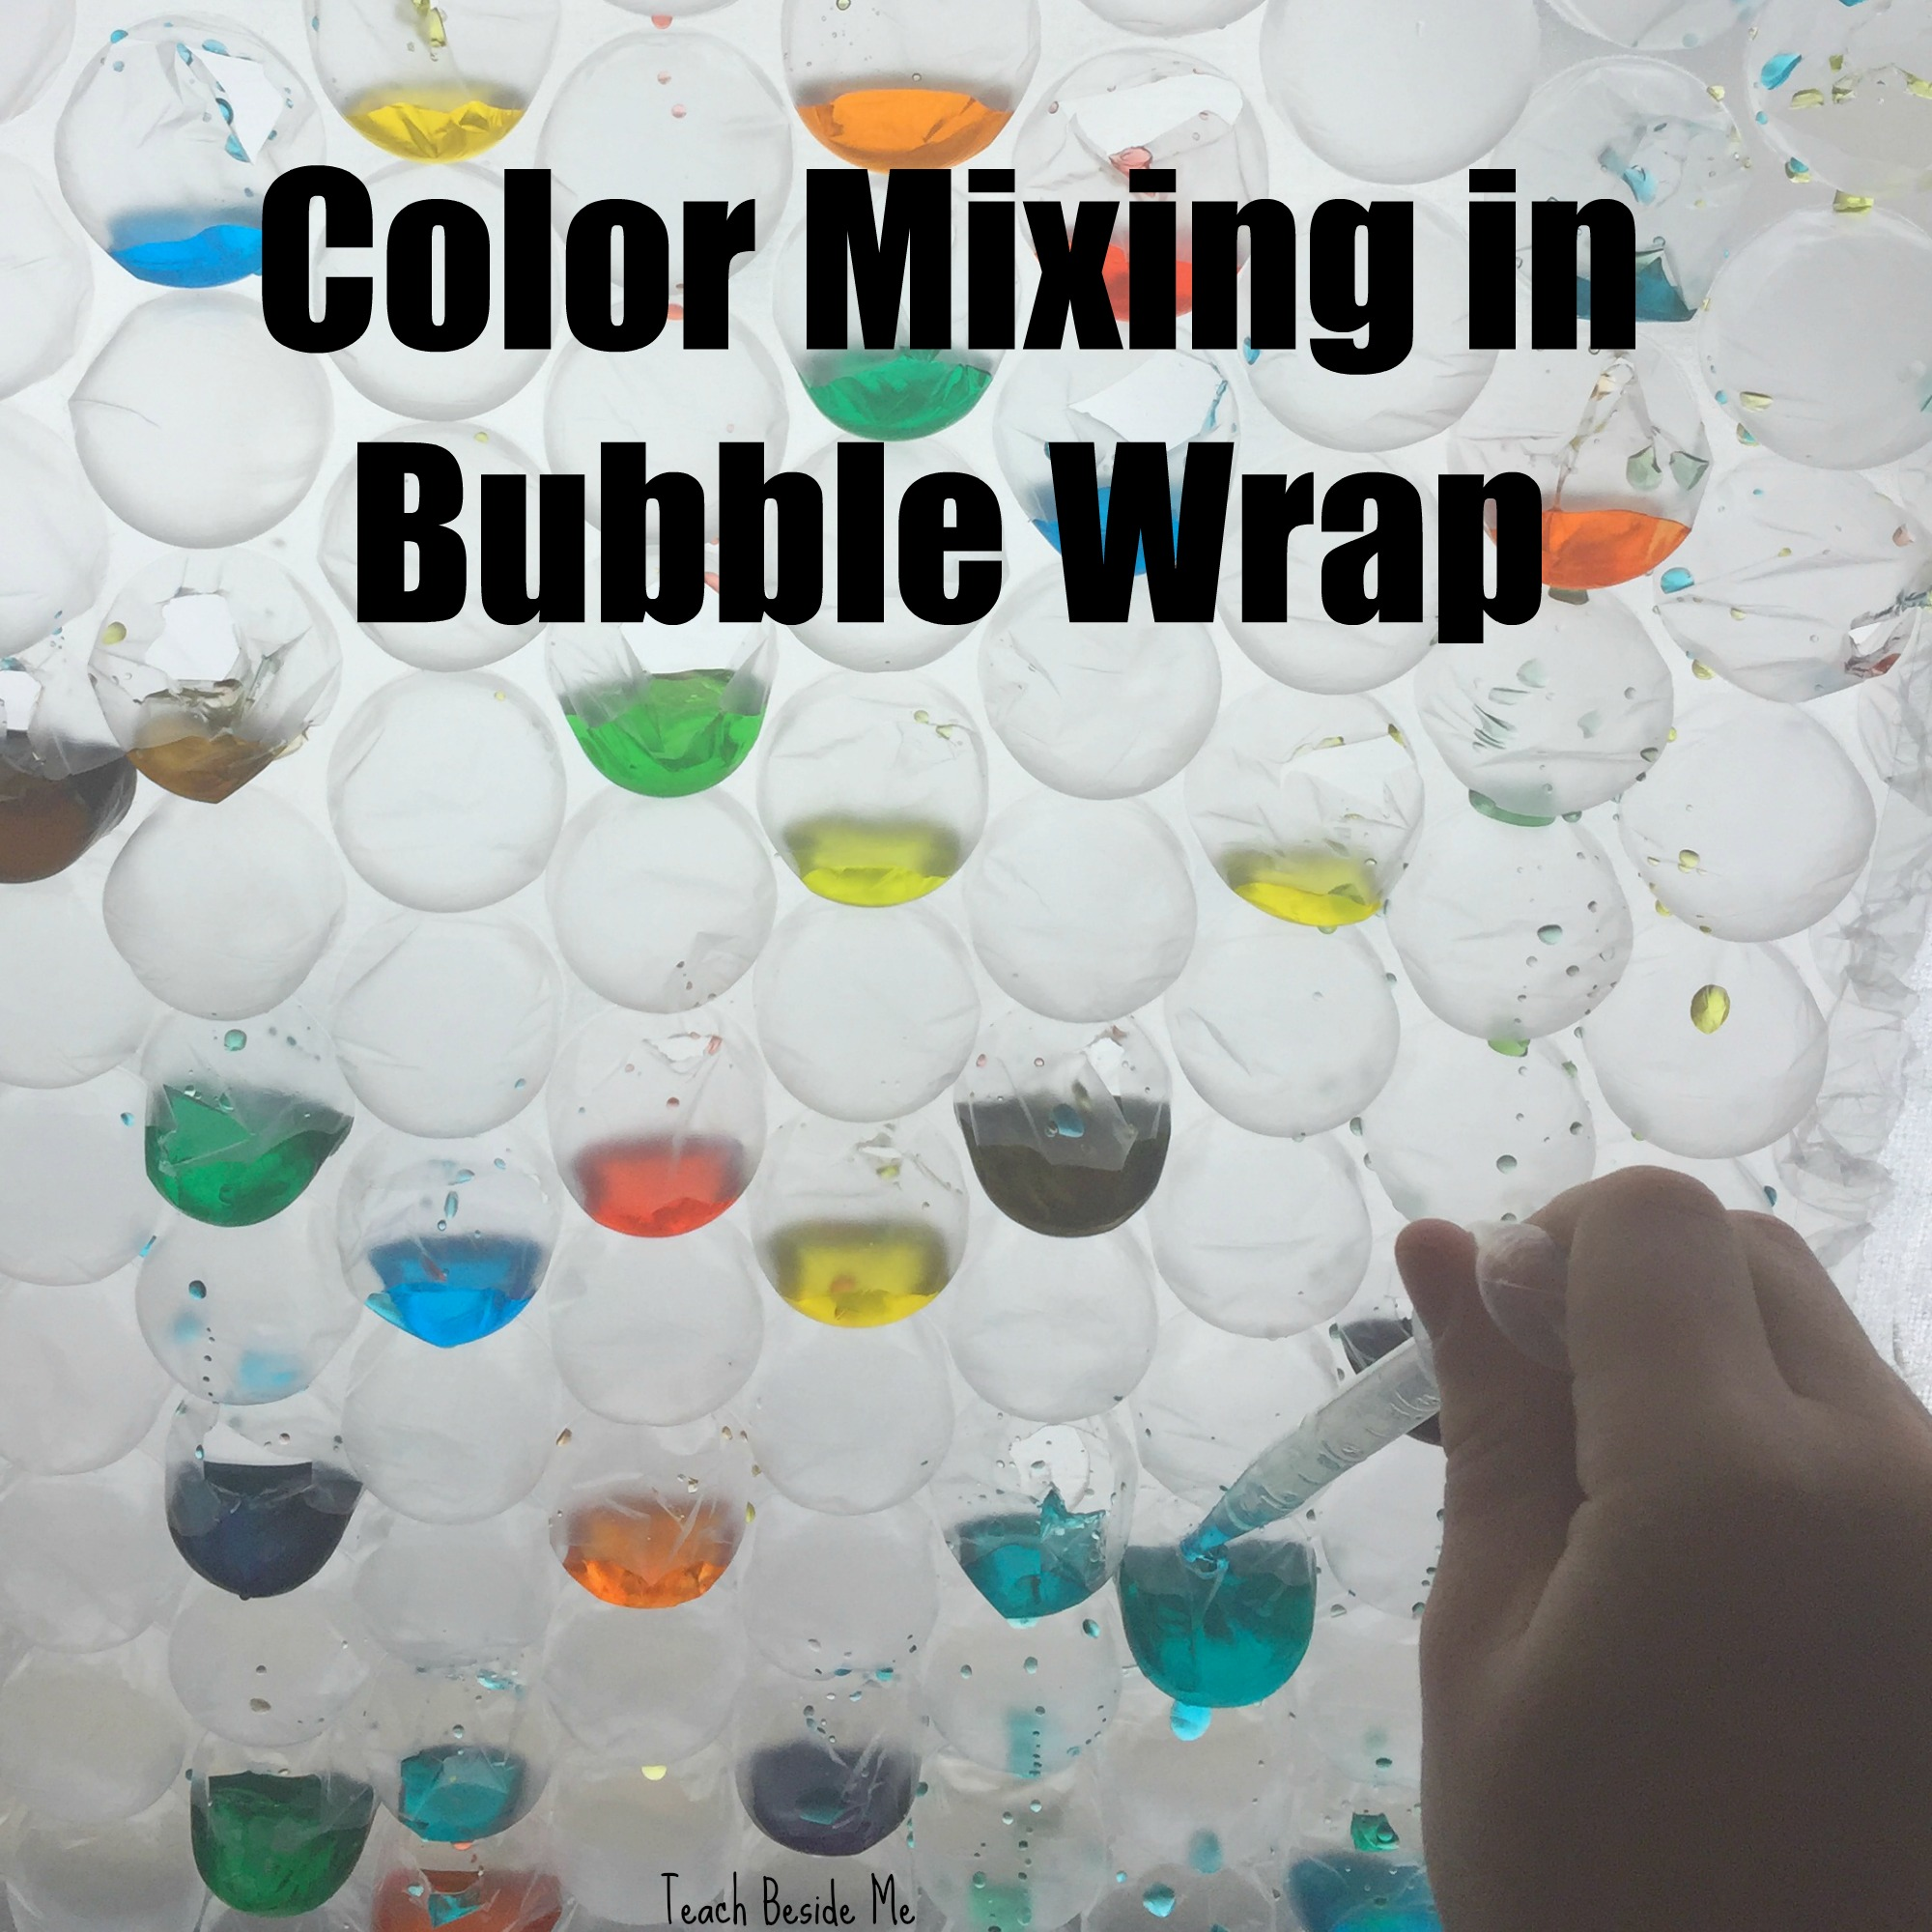 Coloring instruments mixing -  Rainbow Color Mixing In Bubble Wrap